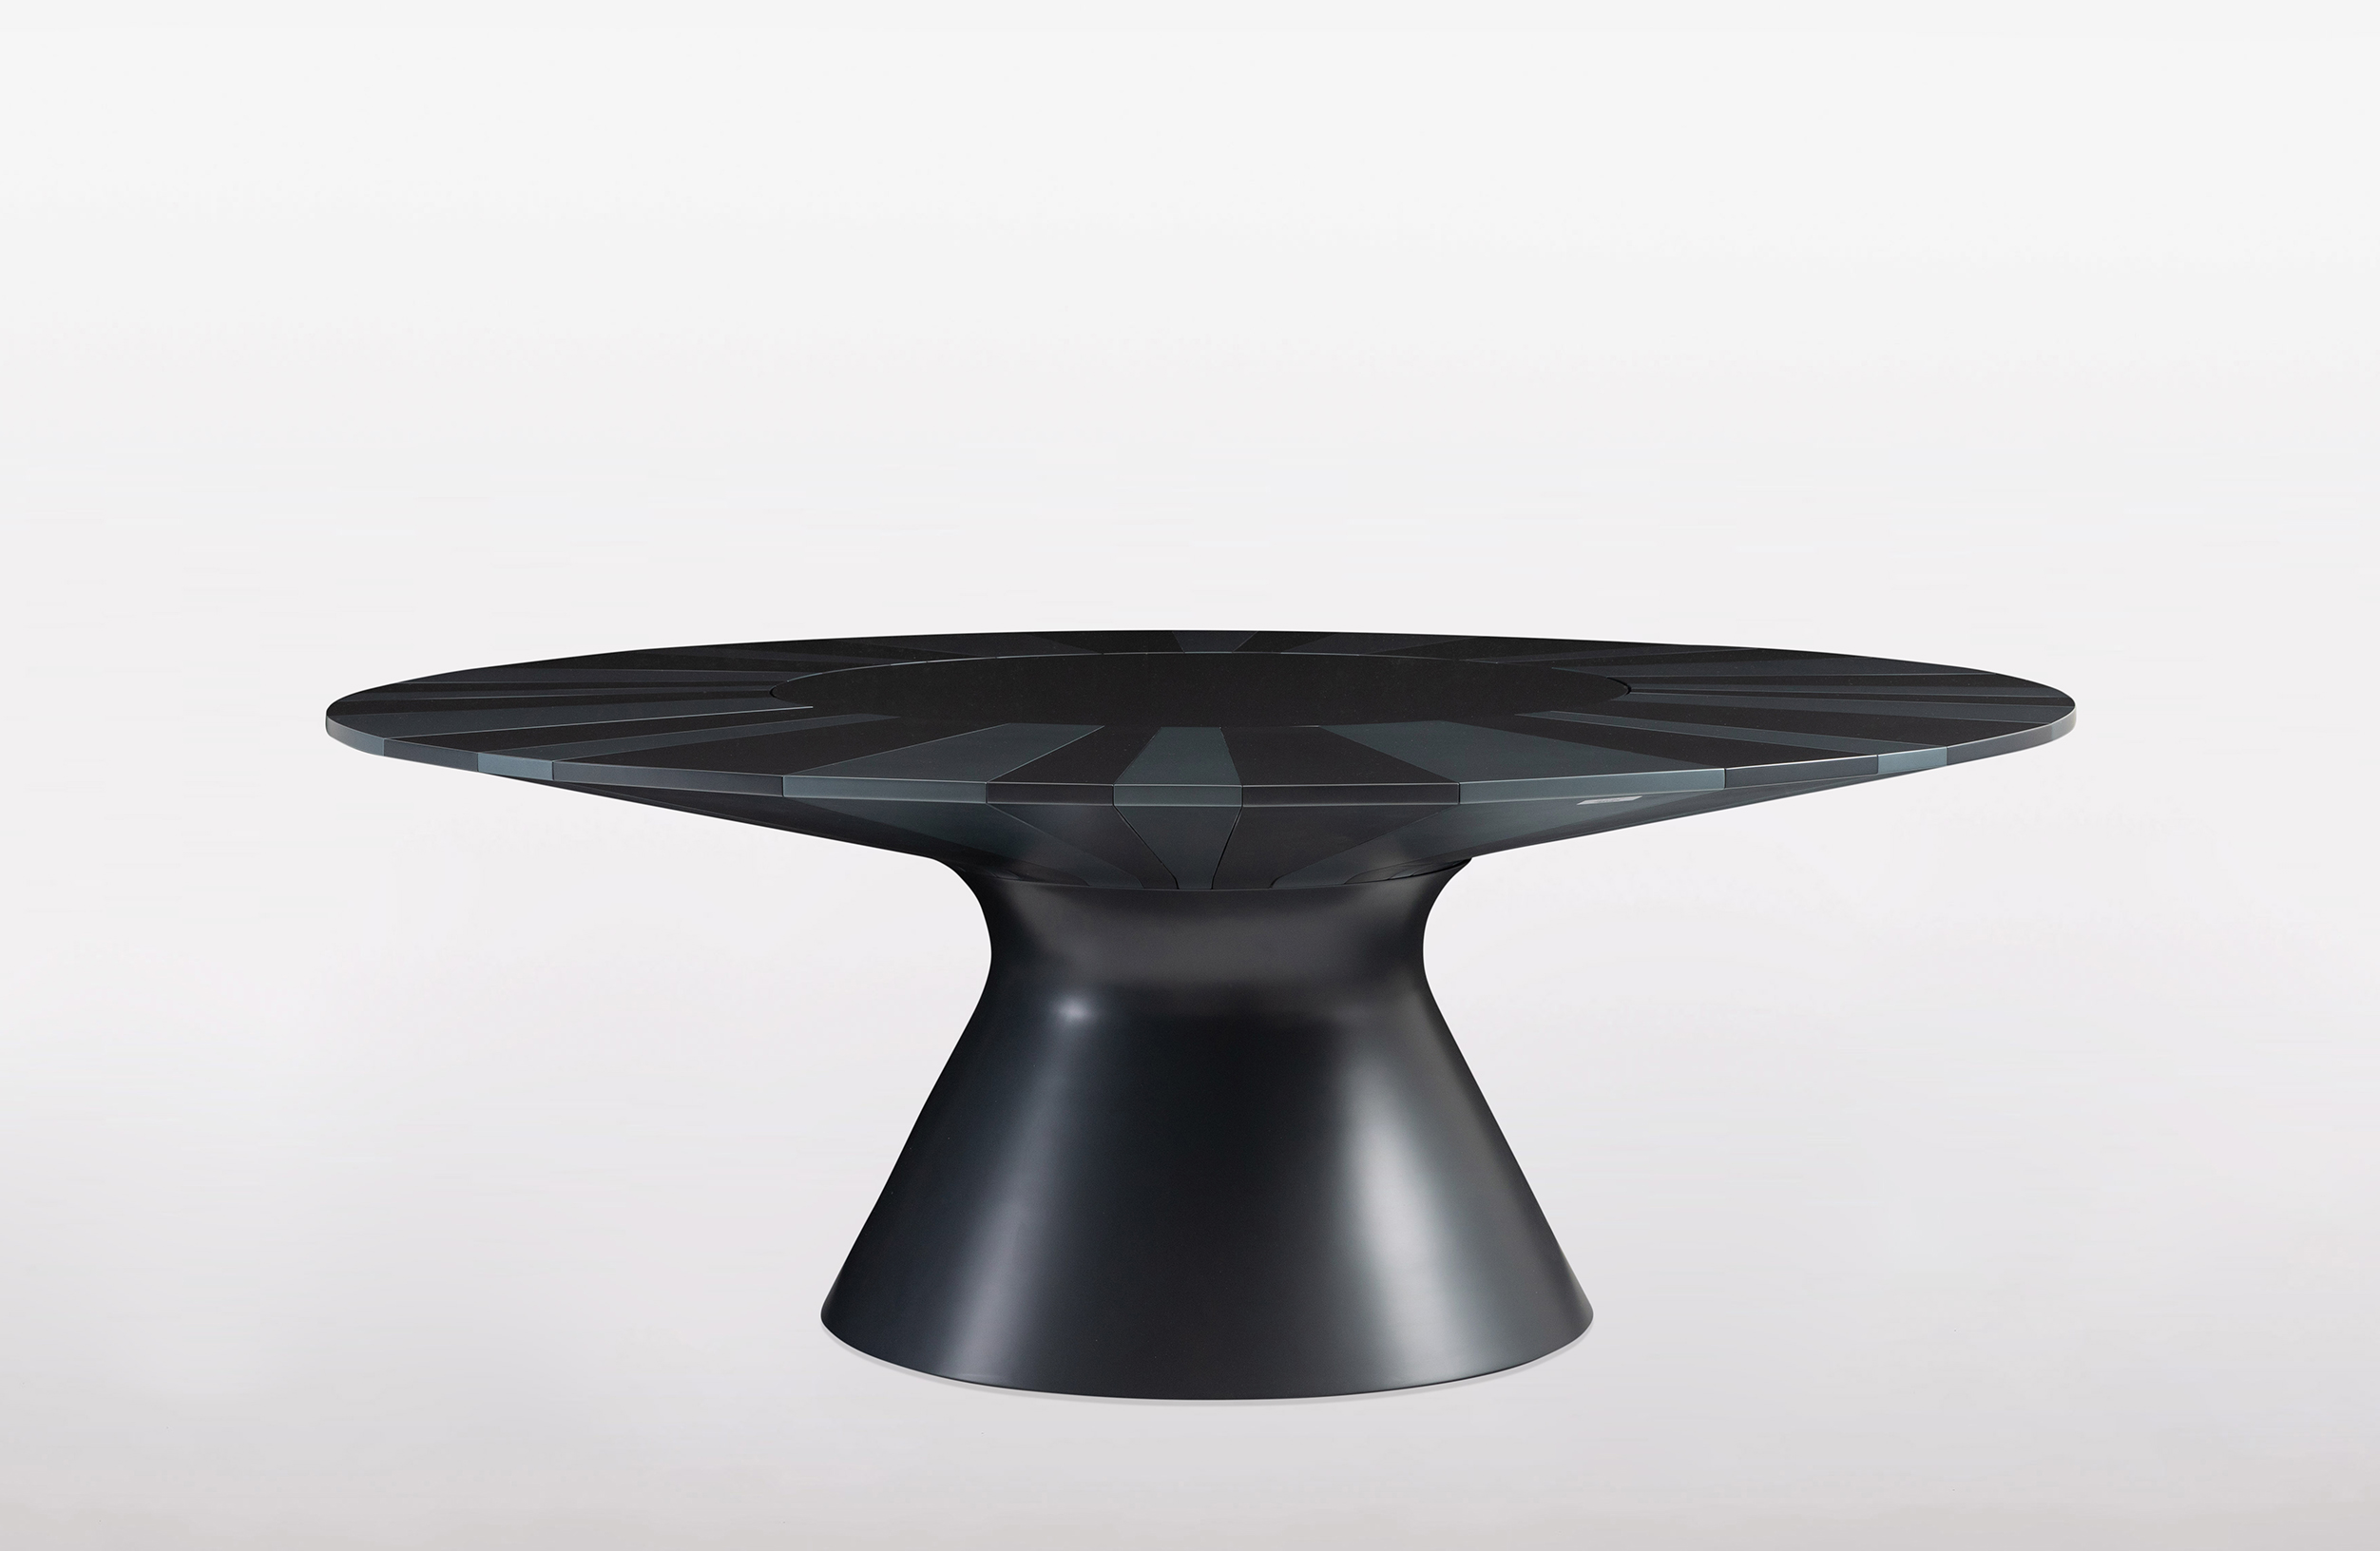 bugatti home-grand-prix-dining-table 01